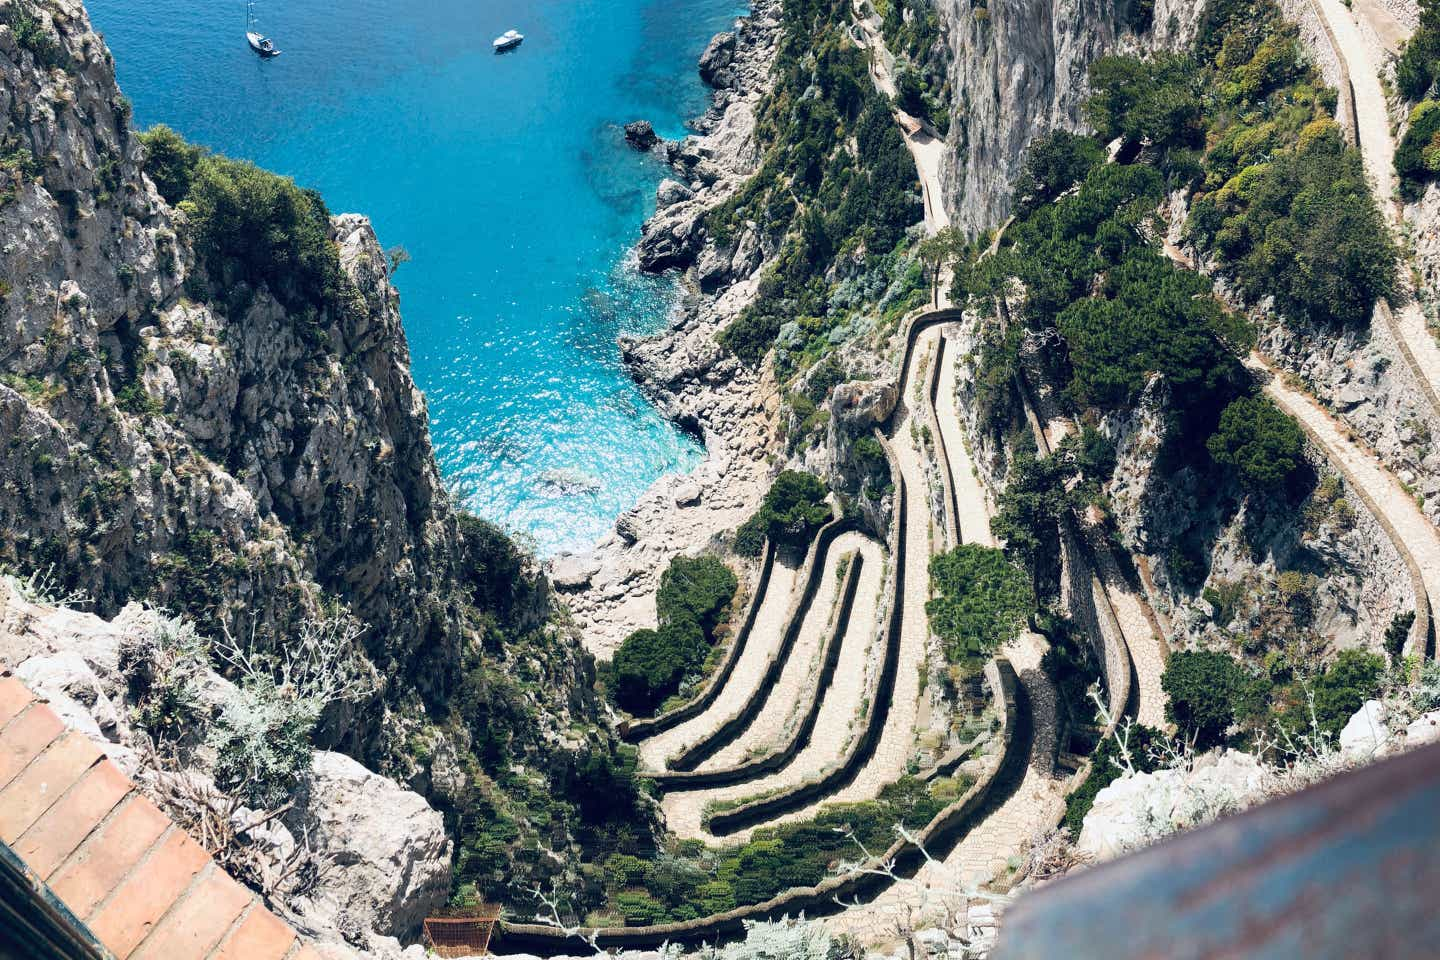 The cliffside of the Capri mountains with winding roads and trees lining the road above the ocean.